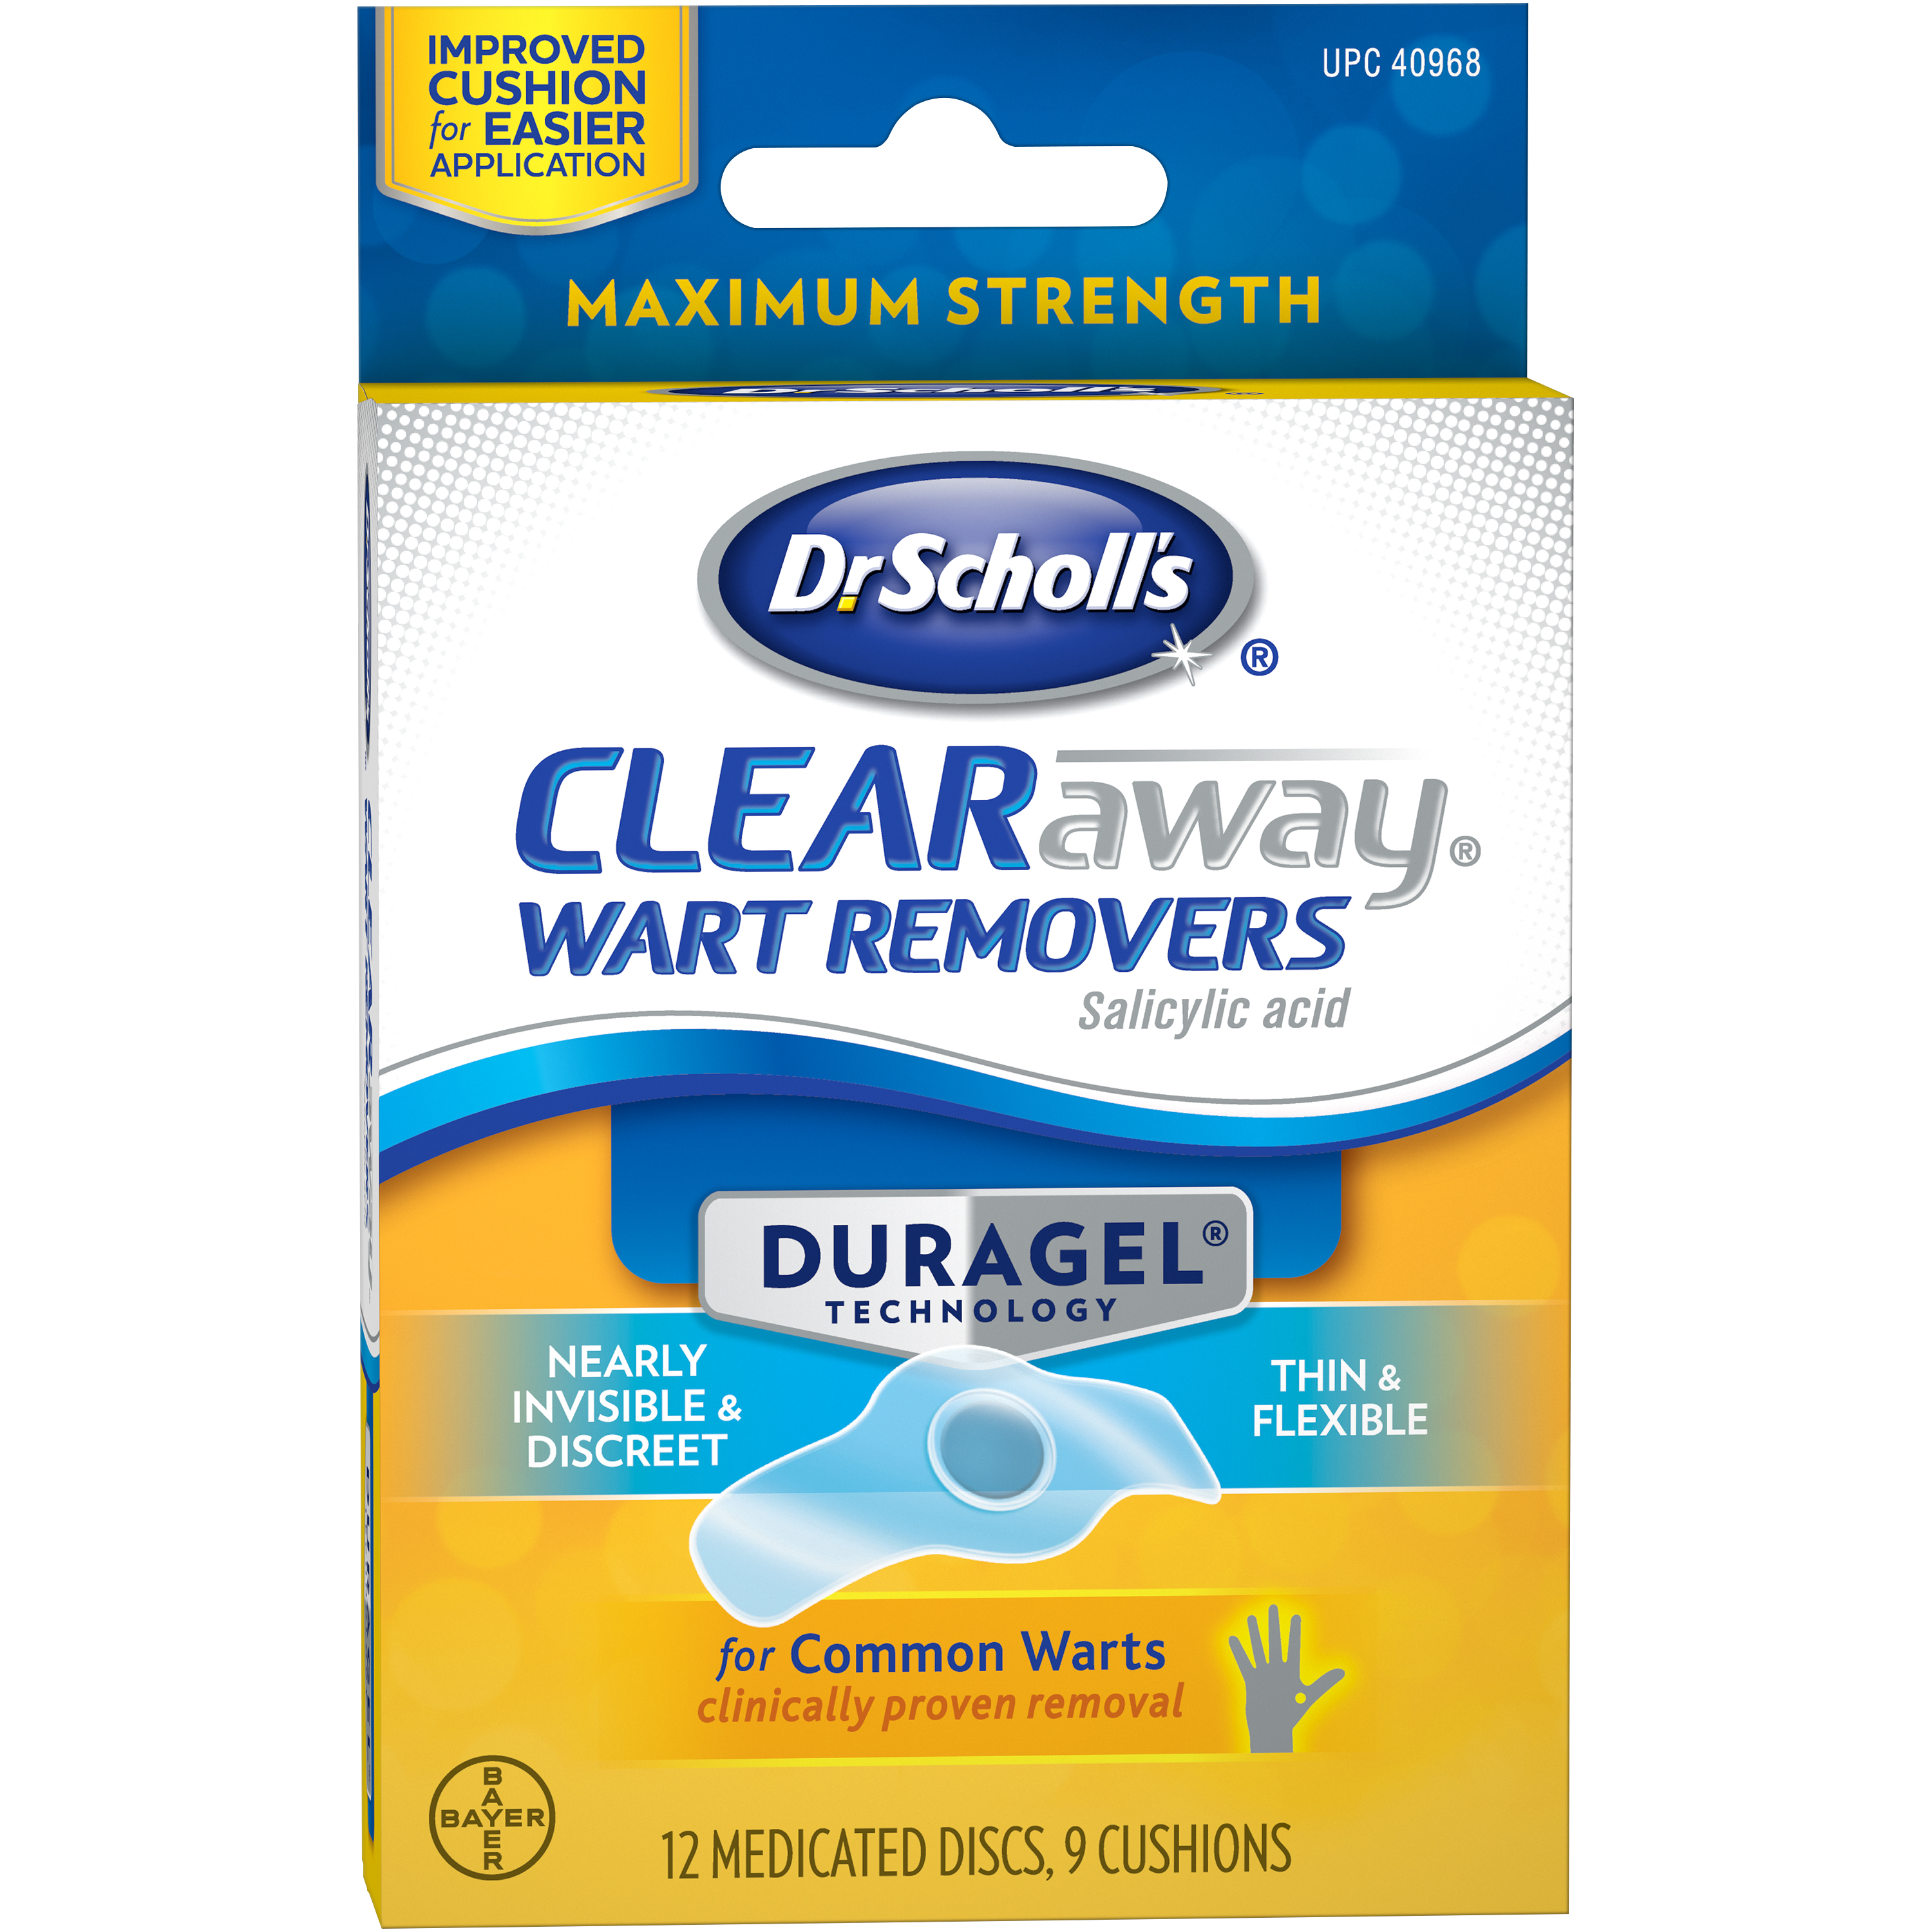 Dr Scholl s Duragel Maximum Strength Clearaway Wart Remover 889a40aaa68